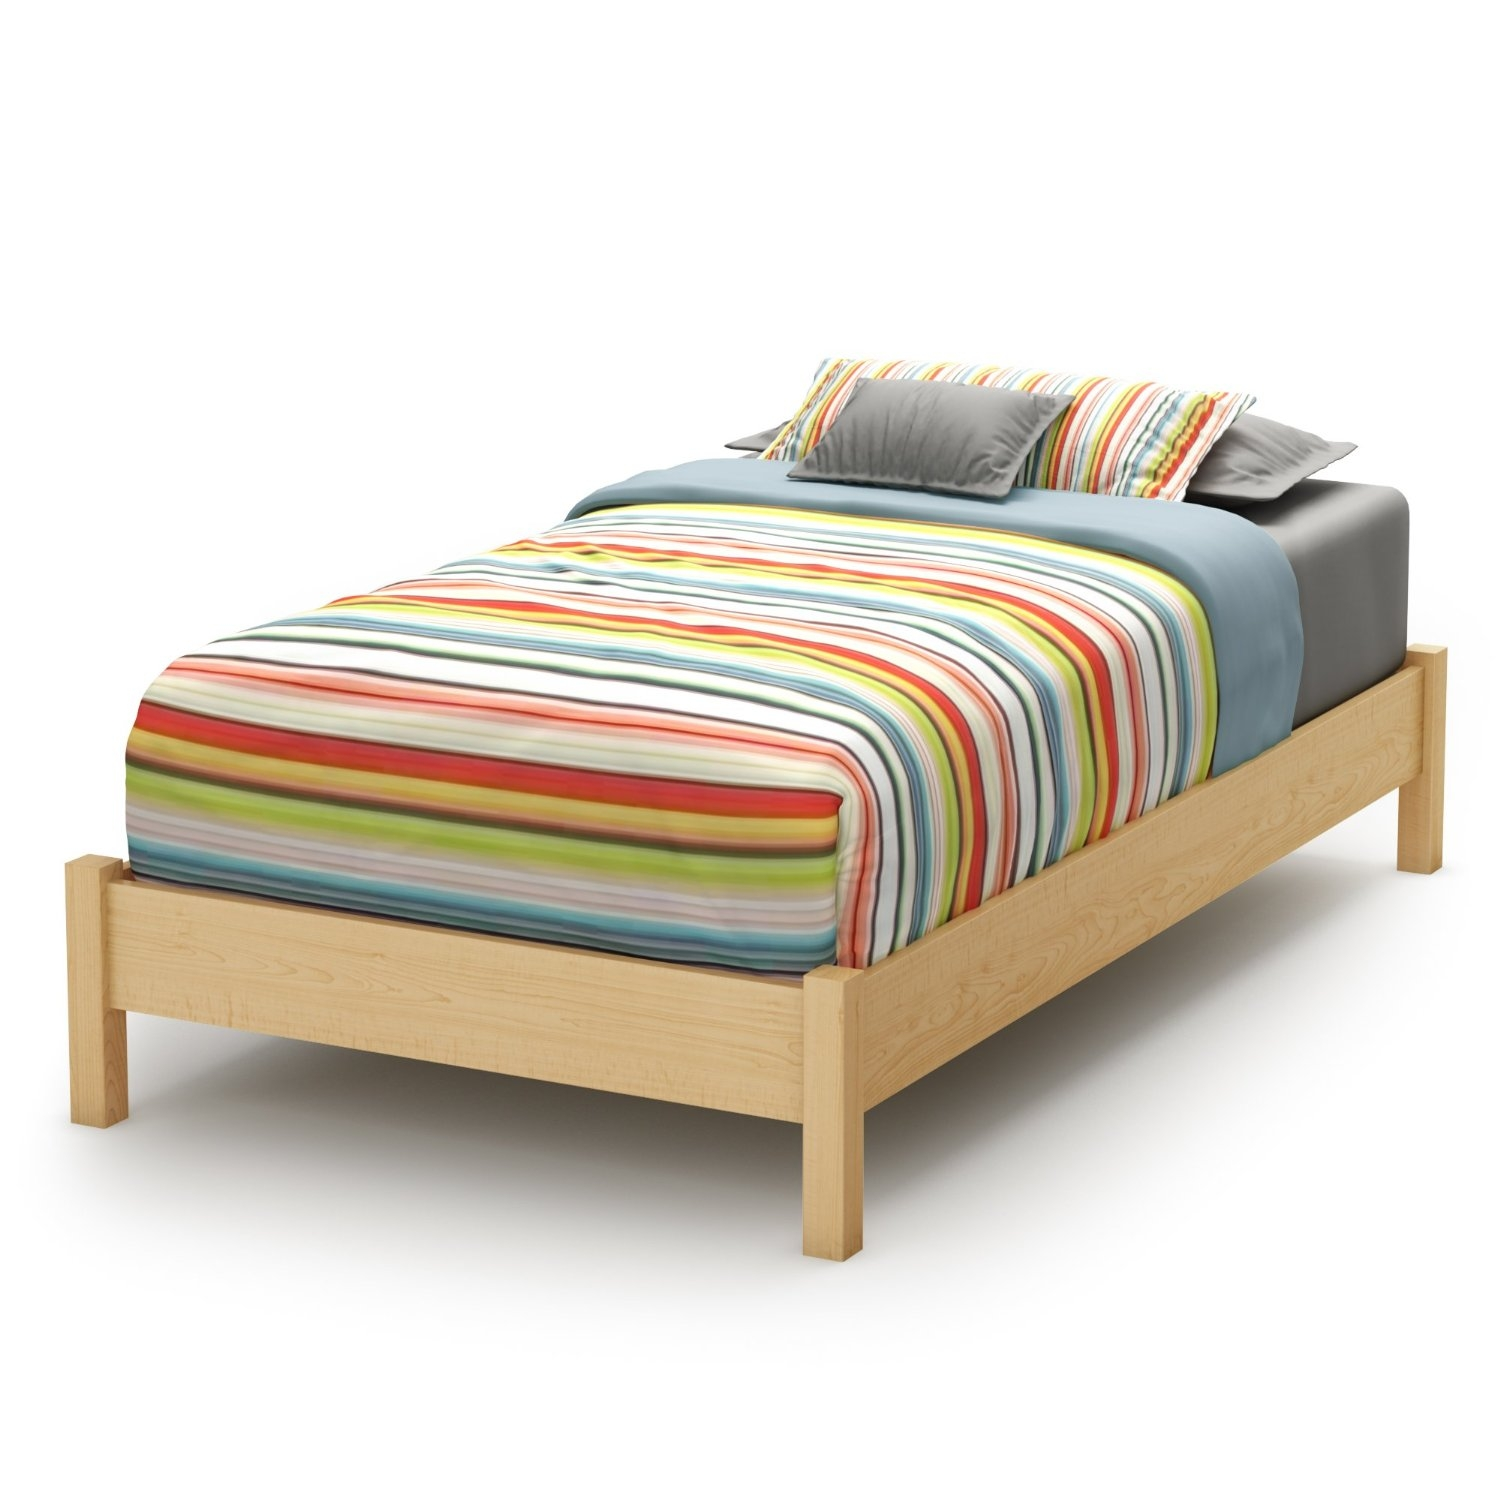 Picture of: Twin Size Platform Bed Frame In Natural Wood Finish Fastfurnishings Com